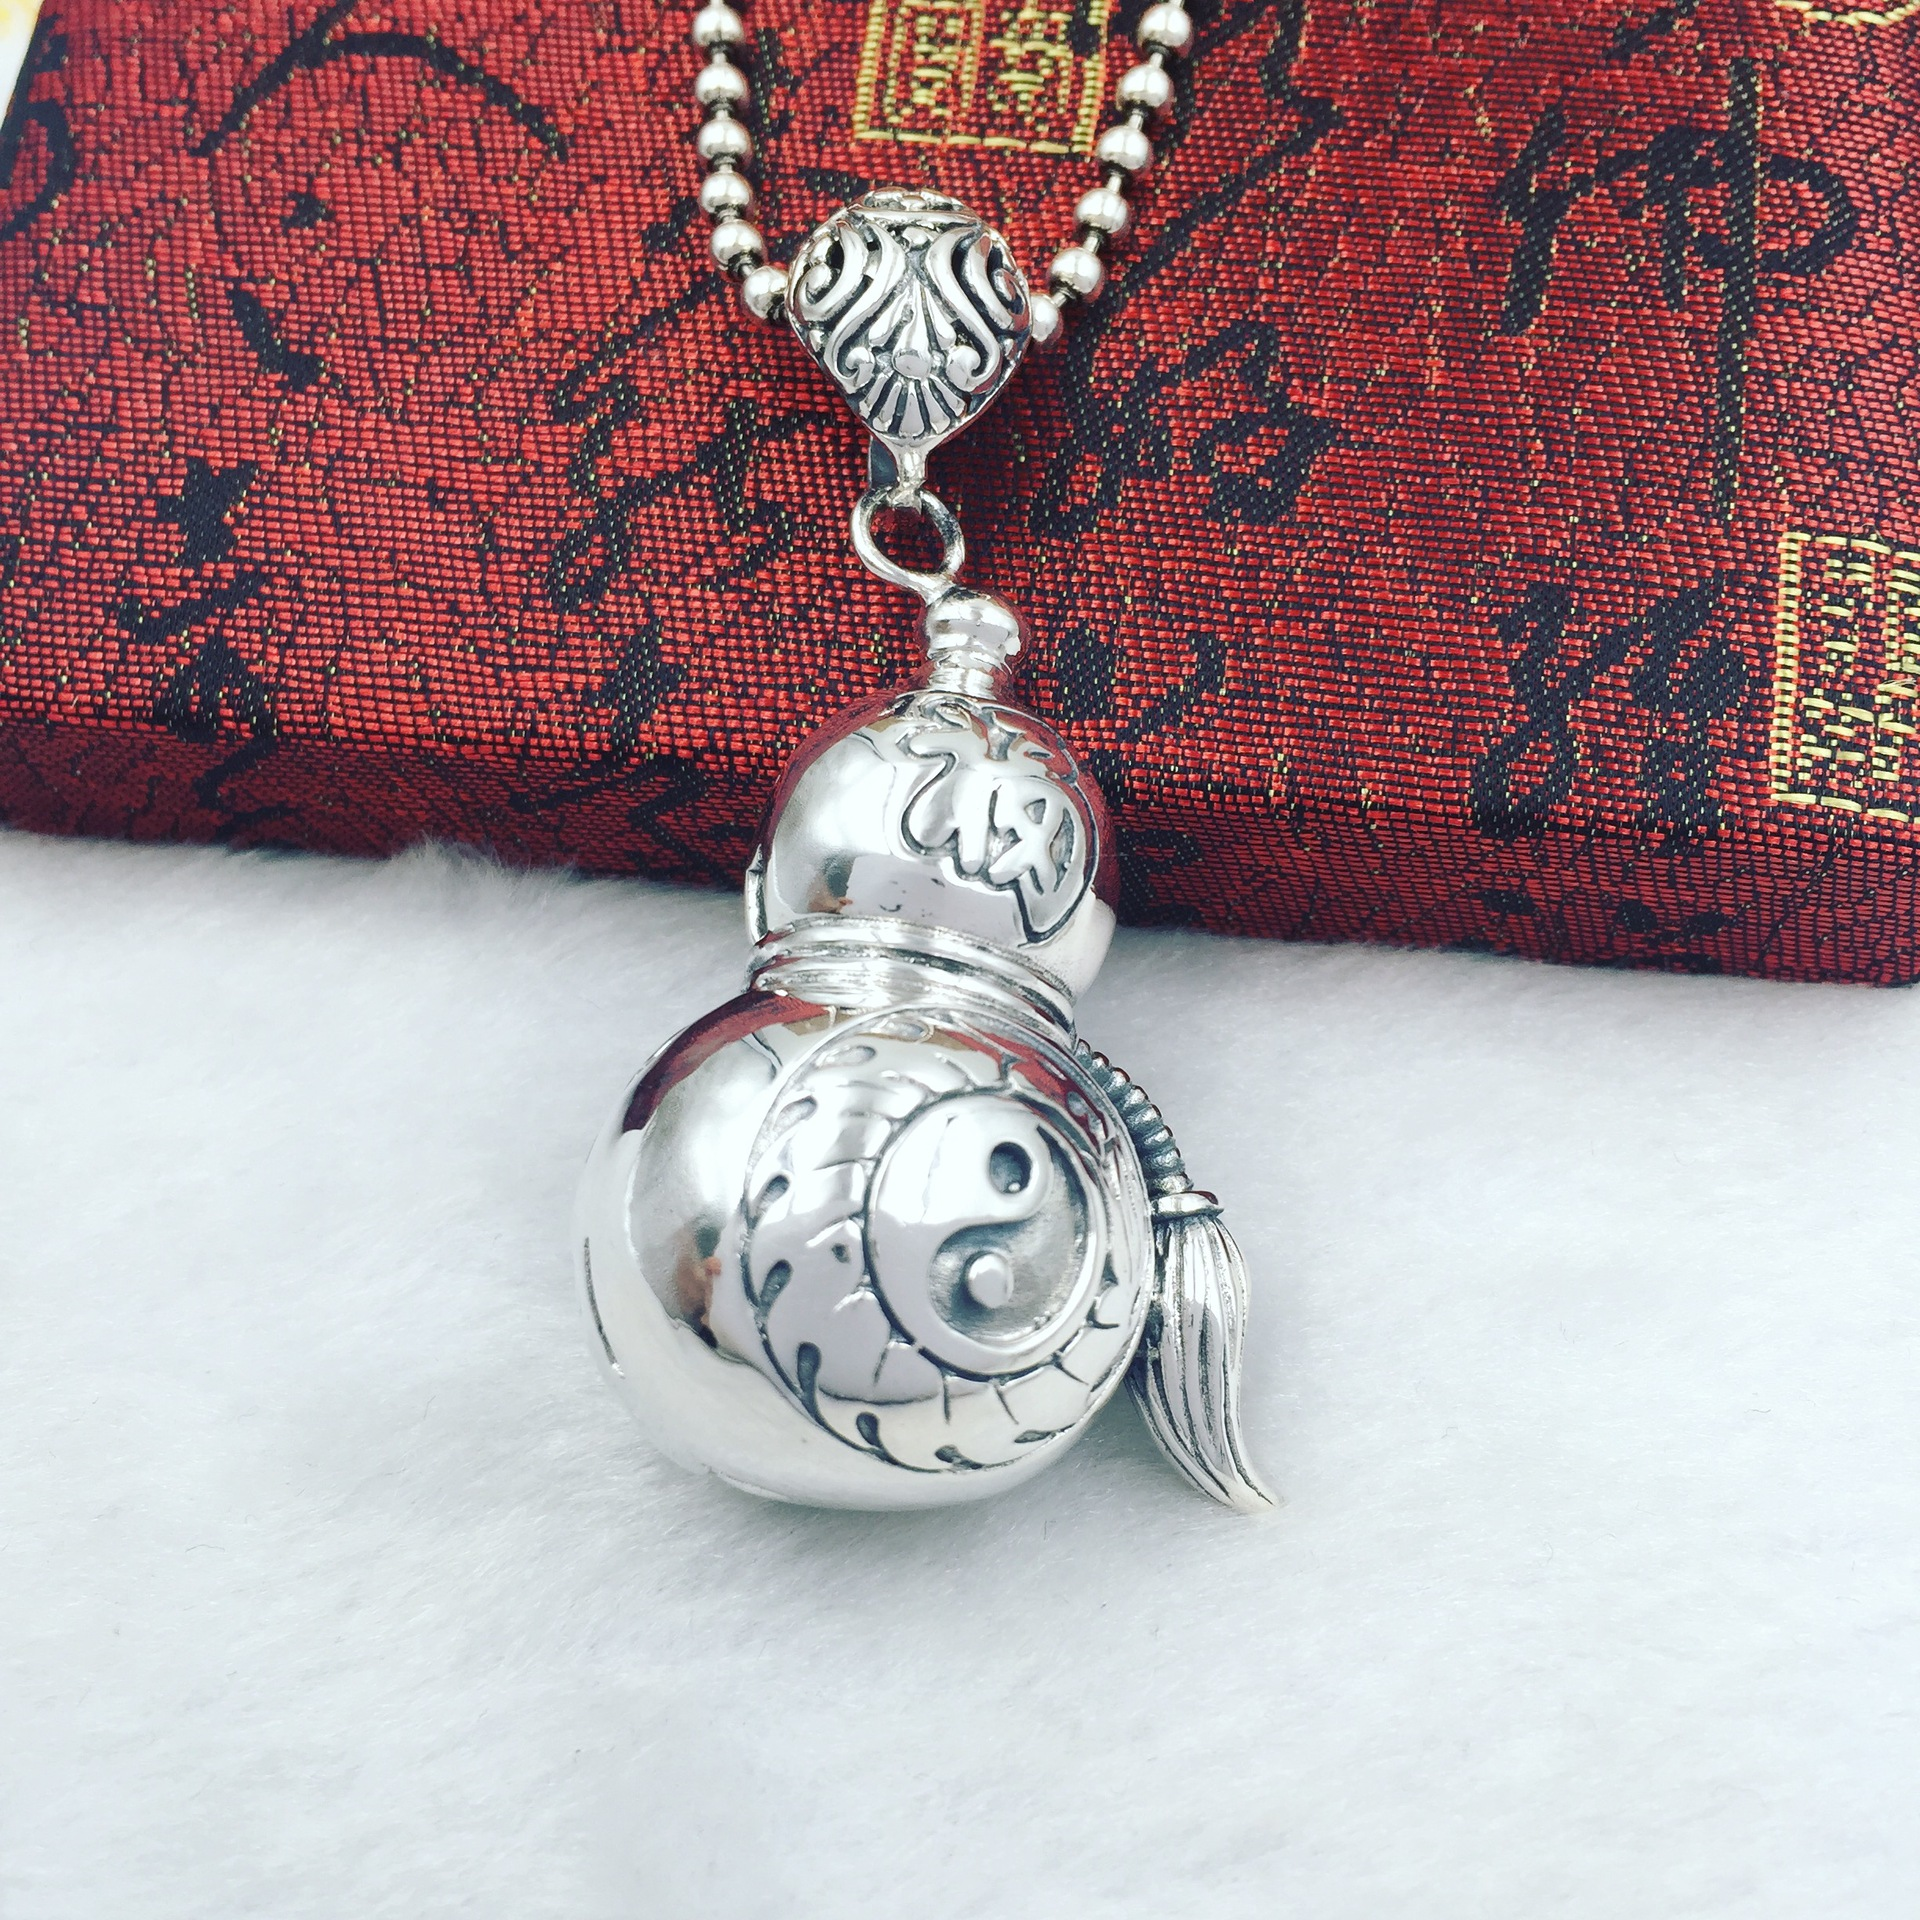 S925 pure silver intime Taoism Lao Bagua Silver Pendant pendant chain hoist sweater factory direct genuine s925 sterling silver pendant silver abacus activities auspicious clouds sweater chain pendant factory direct